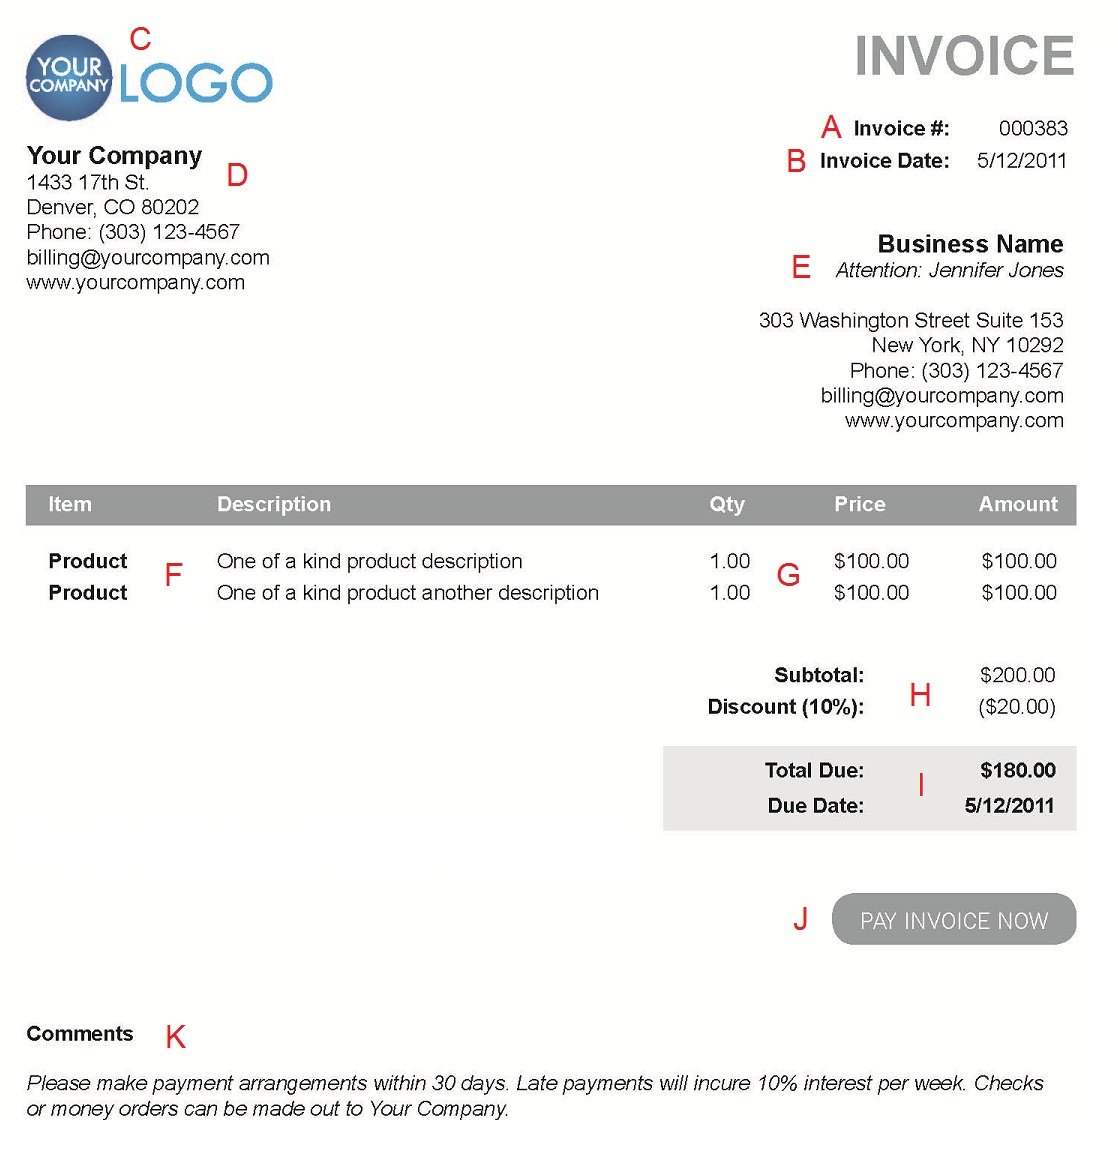 Coolmathgamesus  Pretty The  Different Sections Of An Electronic Payment Invoice With Engaging A  With Archaic Neat Receipt App Also Gross Receipts Surcharge In Addition Used Receipt Printer And Printable Rental Receipt As Well As Transaction Receipt Template Additionally Free Receipt Template Pdf From Paysimplecom With Coolmathgamesus  Engaging The  Different Sections Of An Electronic Payment Invoice With Archaic A  And Pretty Neat Receipt App Also Gross Receipts Surcharge In Addition Used Receipt Printer From Paysimplecom